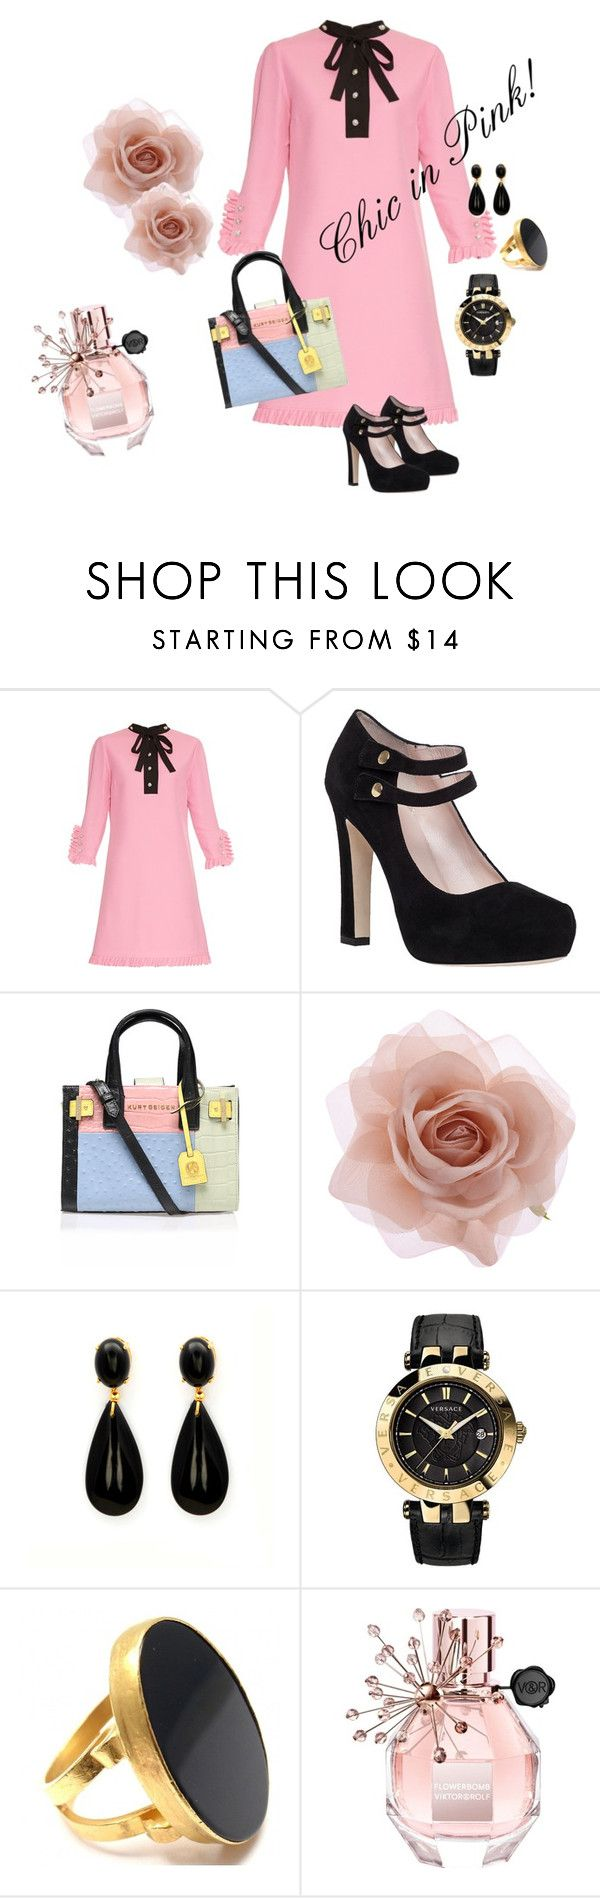 """Chic in Pink!"" by marialibra on Polyvore featuring Gucci, Kate Spade, Kurt Geiger, Accessorize, Versace, Yossi Harari, Viktor & Rolf, women's clothing, women and female"